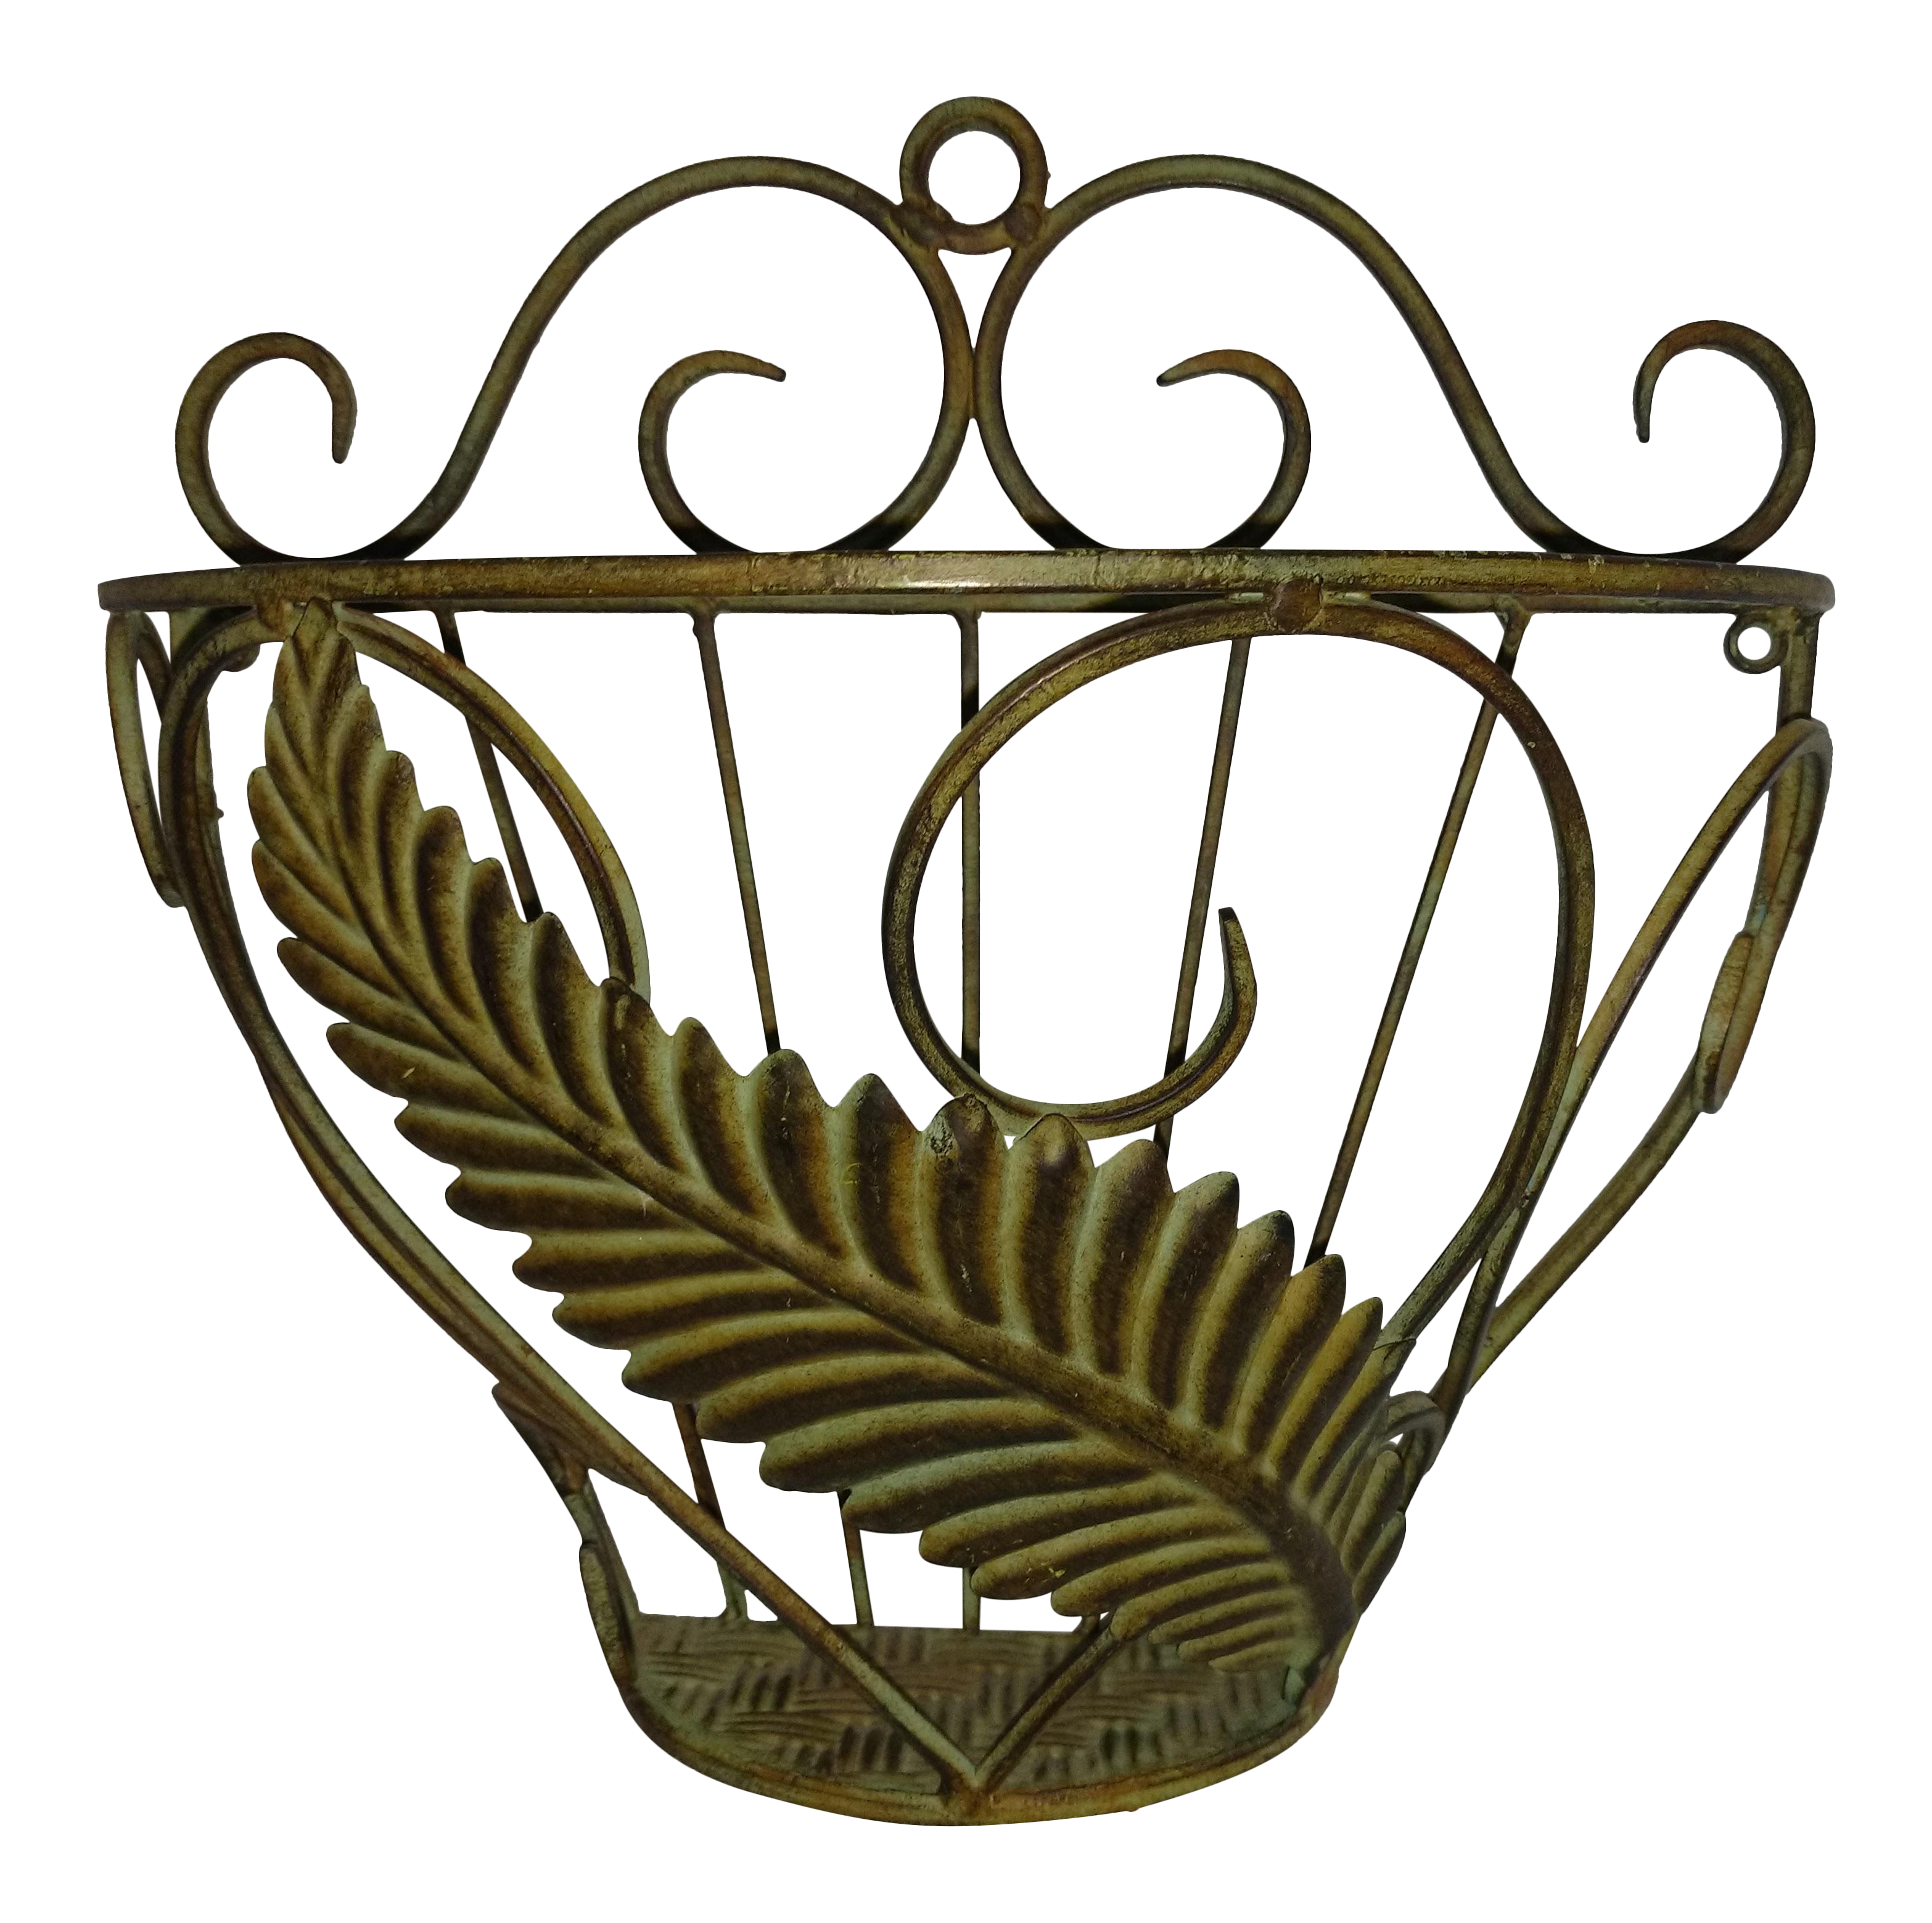 Wall hanging metal planter chairish for Kitchen cabinet trends 2018 combined with painted metal art wall hanging